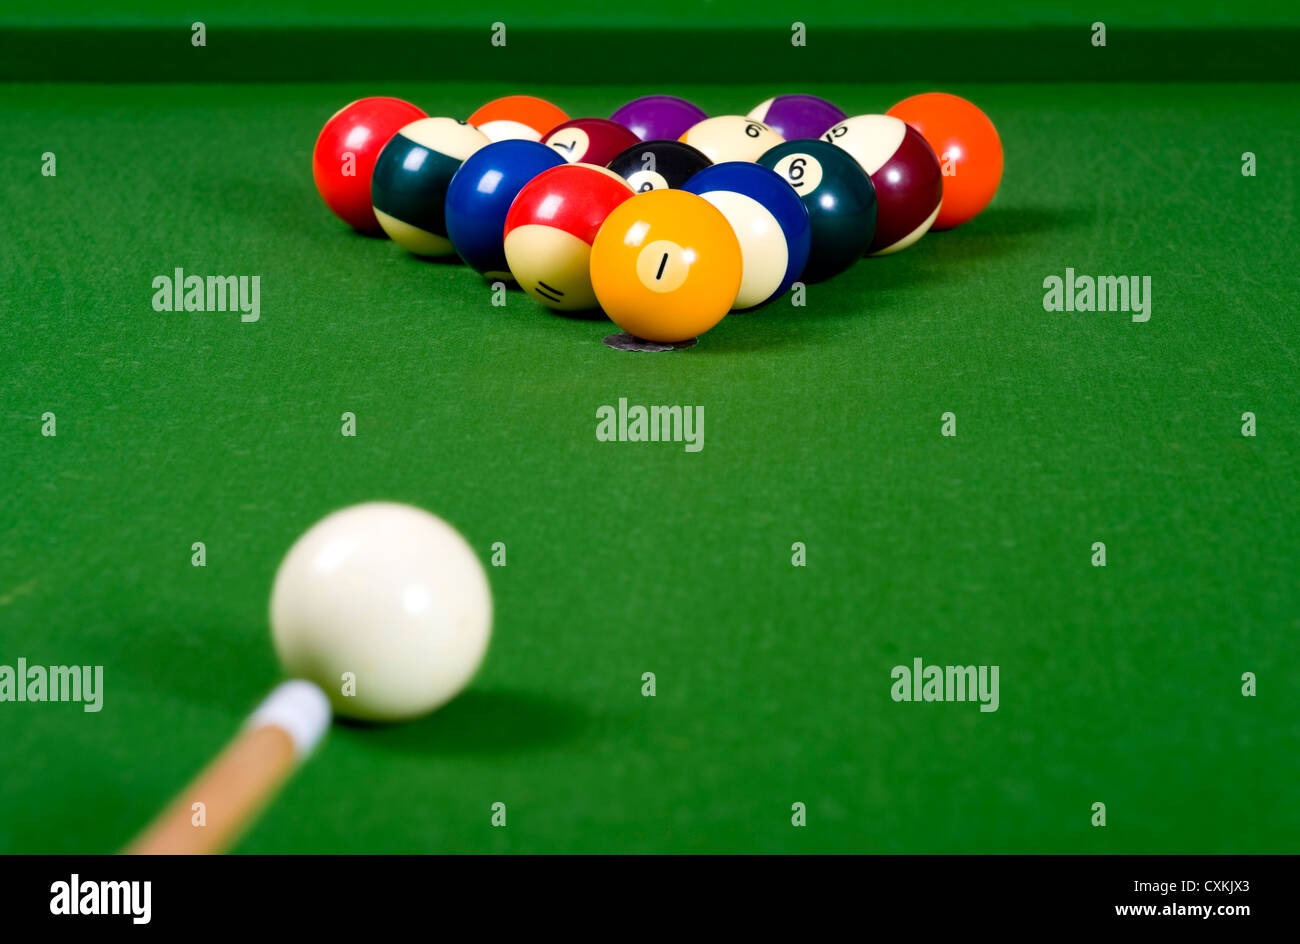 A game of pool with the balls lined up in an 8-ball formation on a green felt pool table - Stock Image